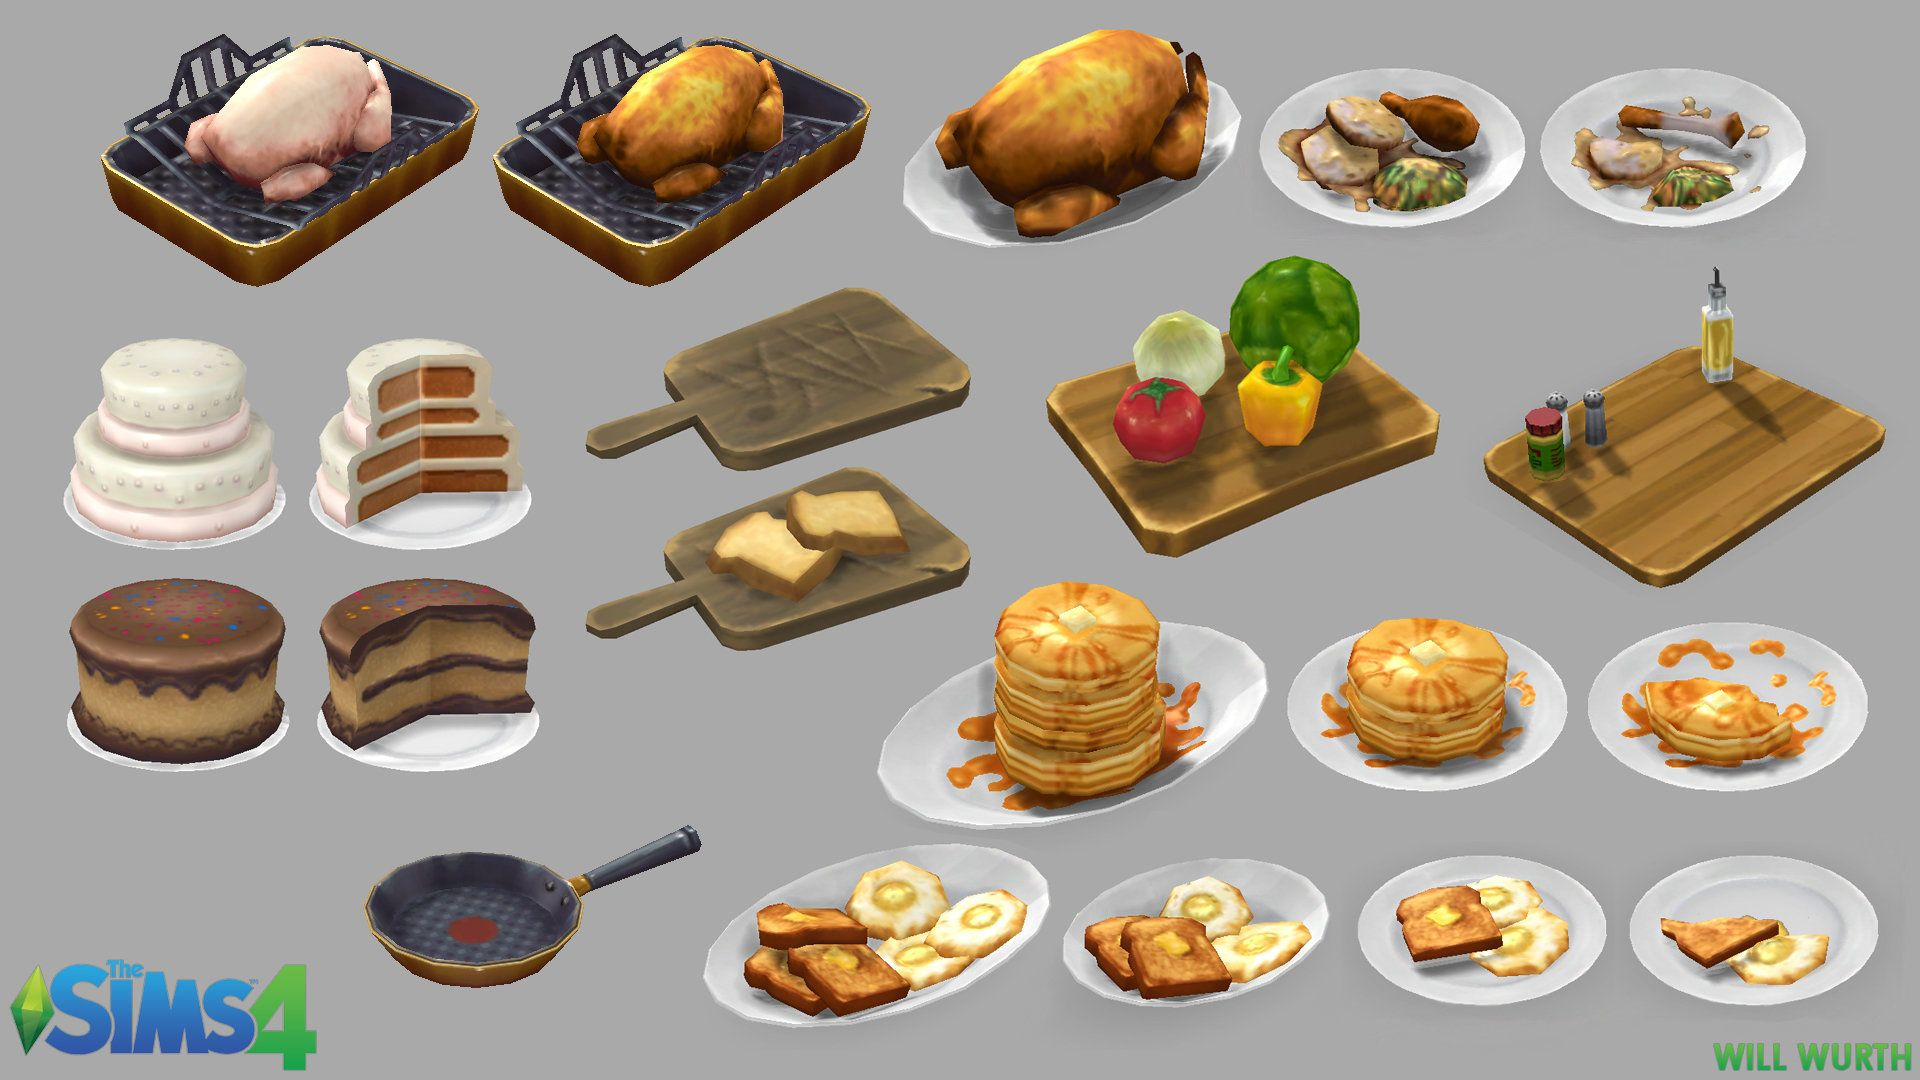 ArtStation - The Sims 11 Object Art, Will Wurth  Sims 11 kitchen